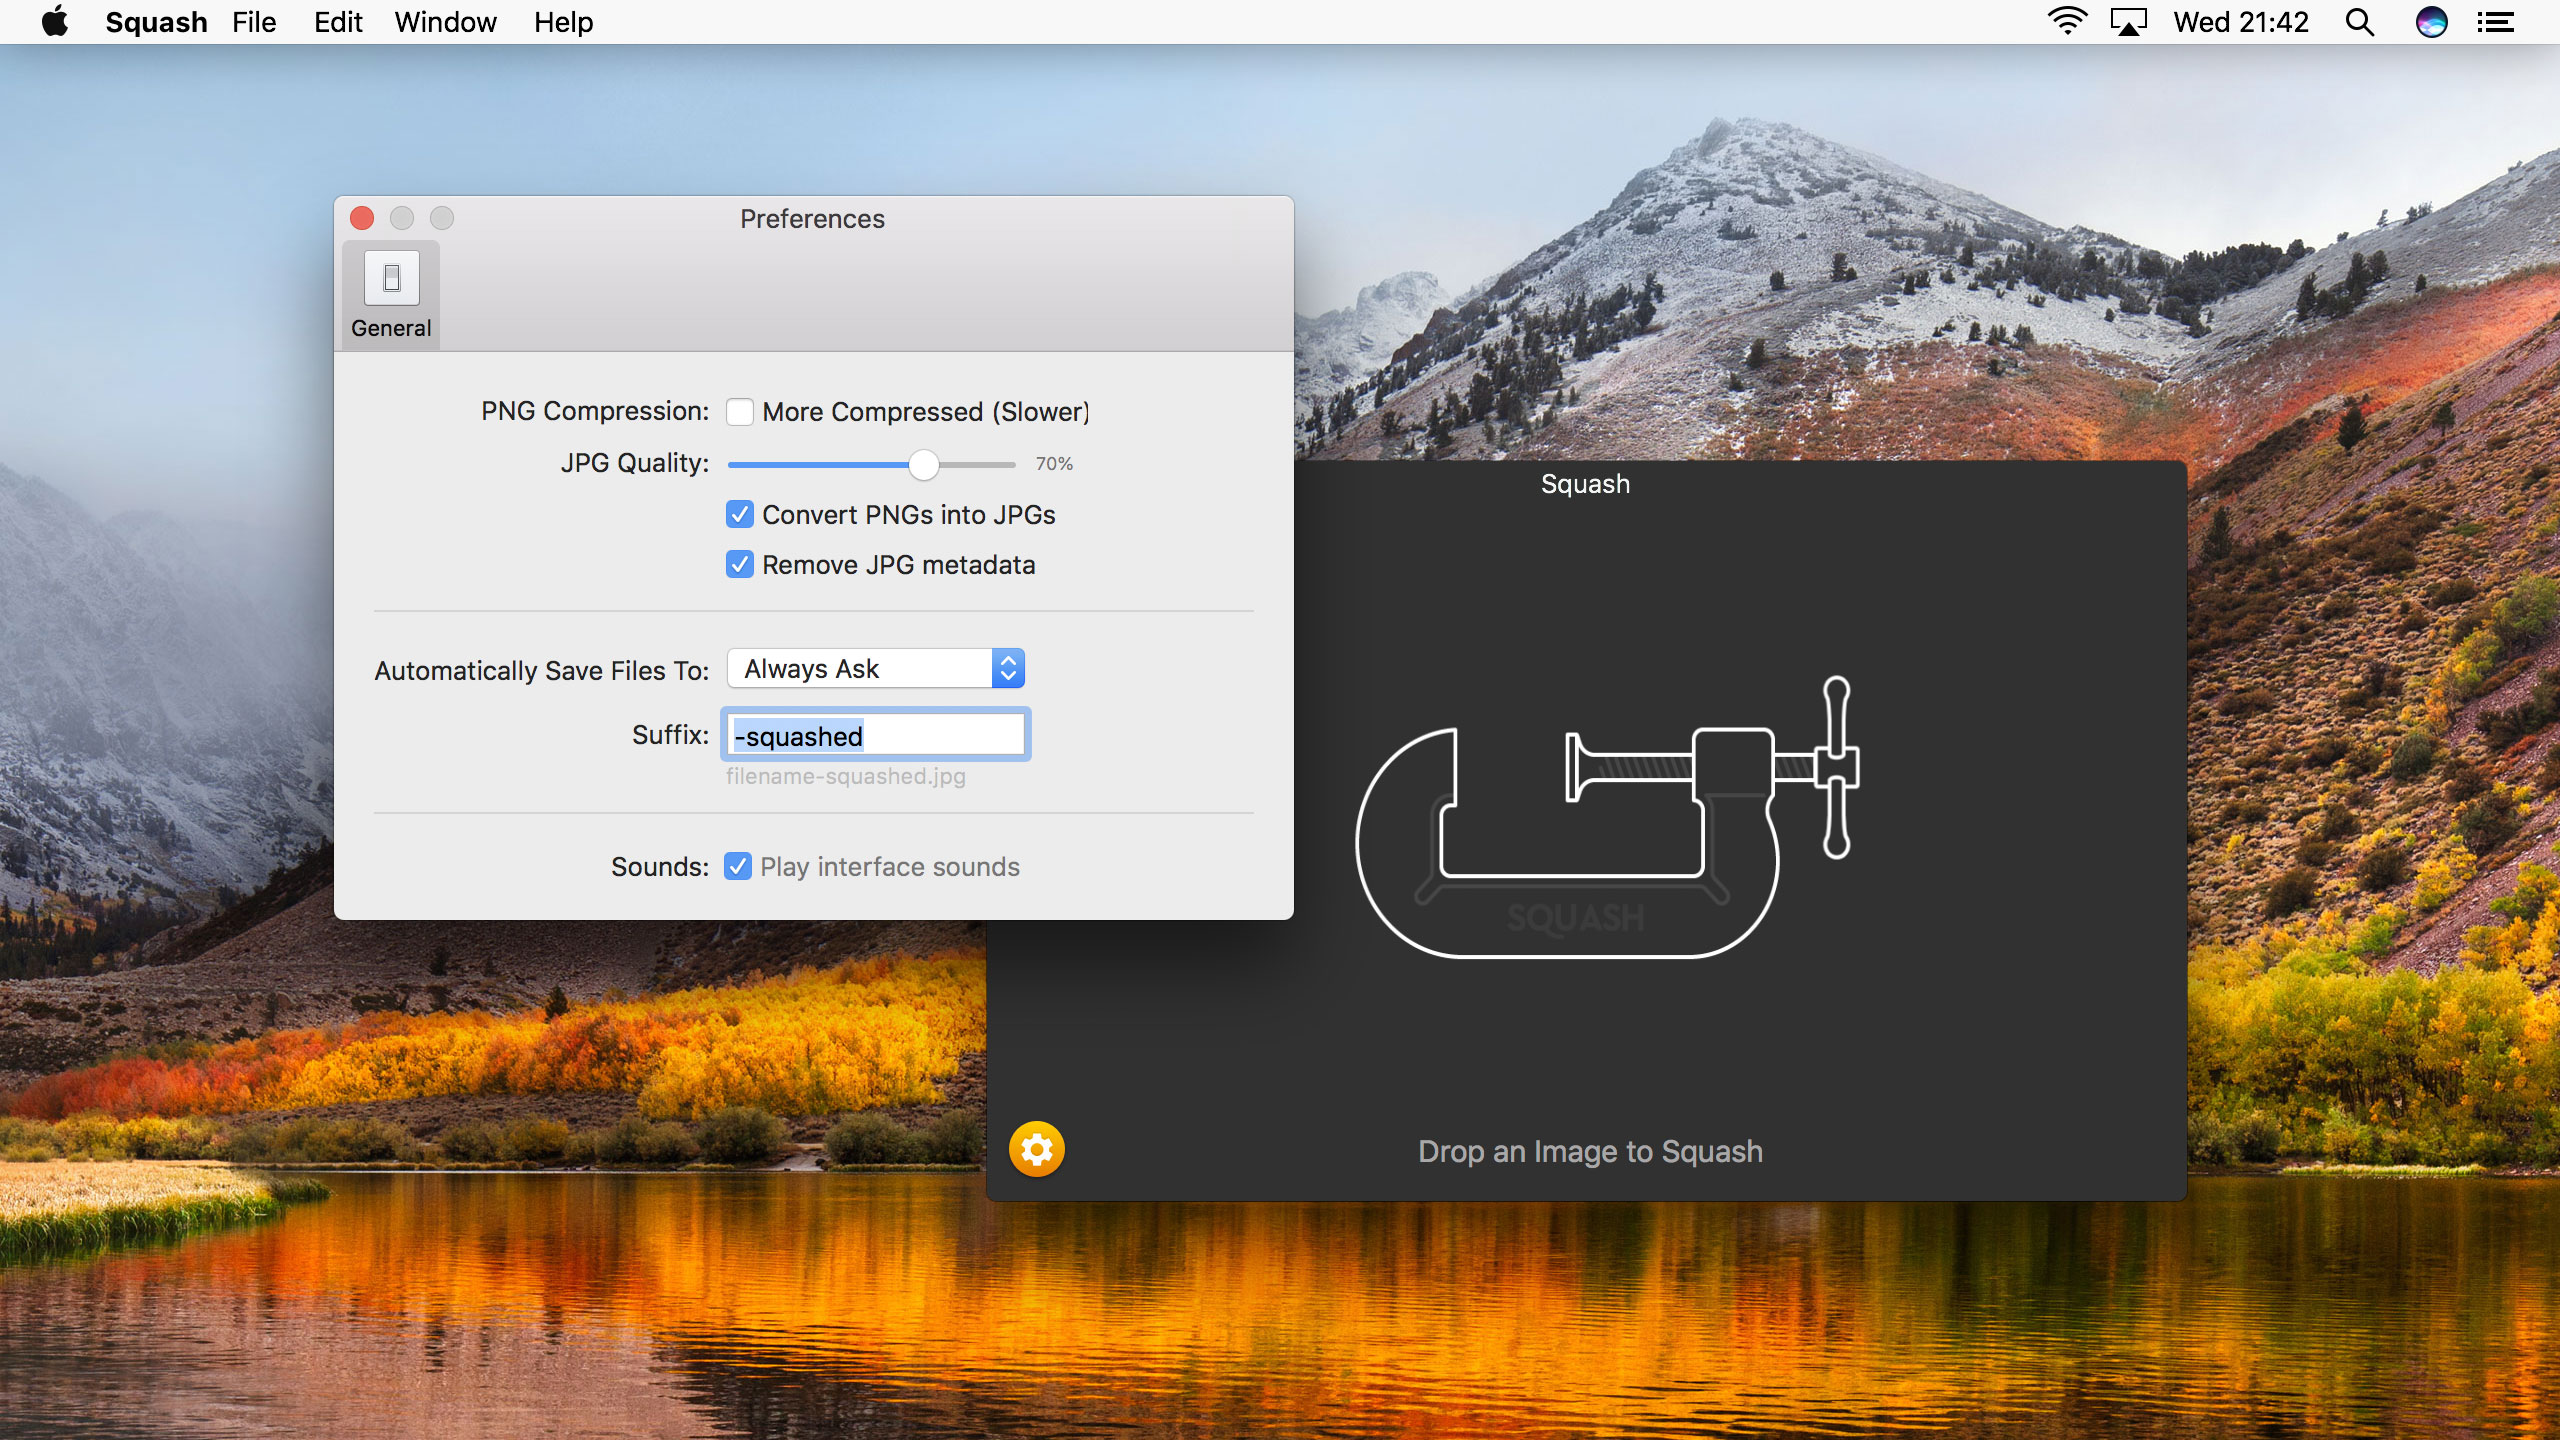 Squash App for Mac - Compress Images For The Web Without Losing Quality